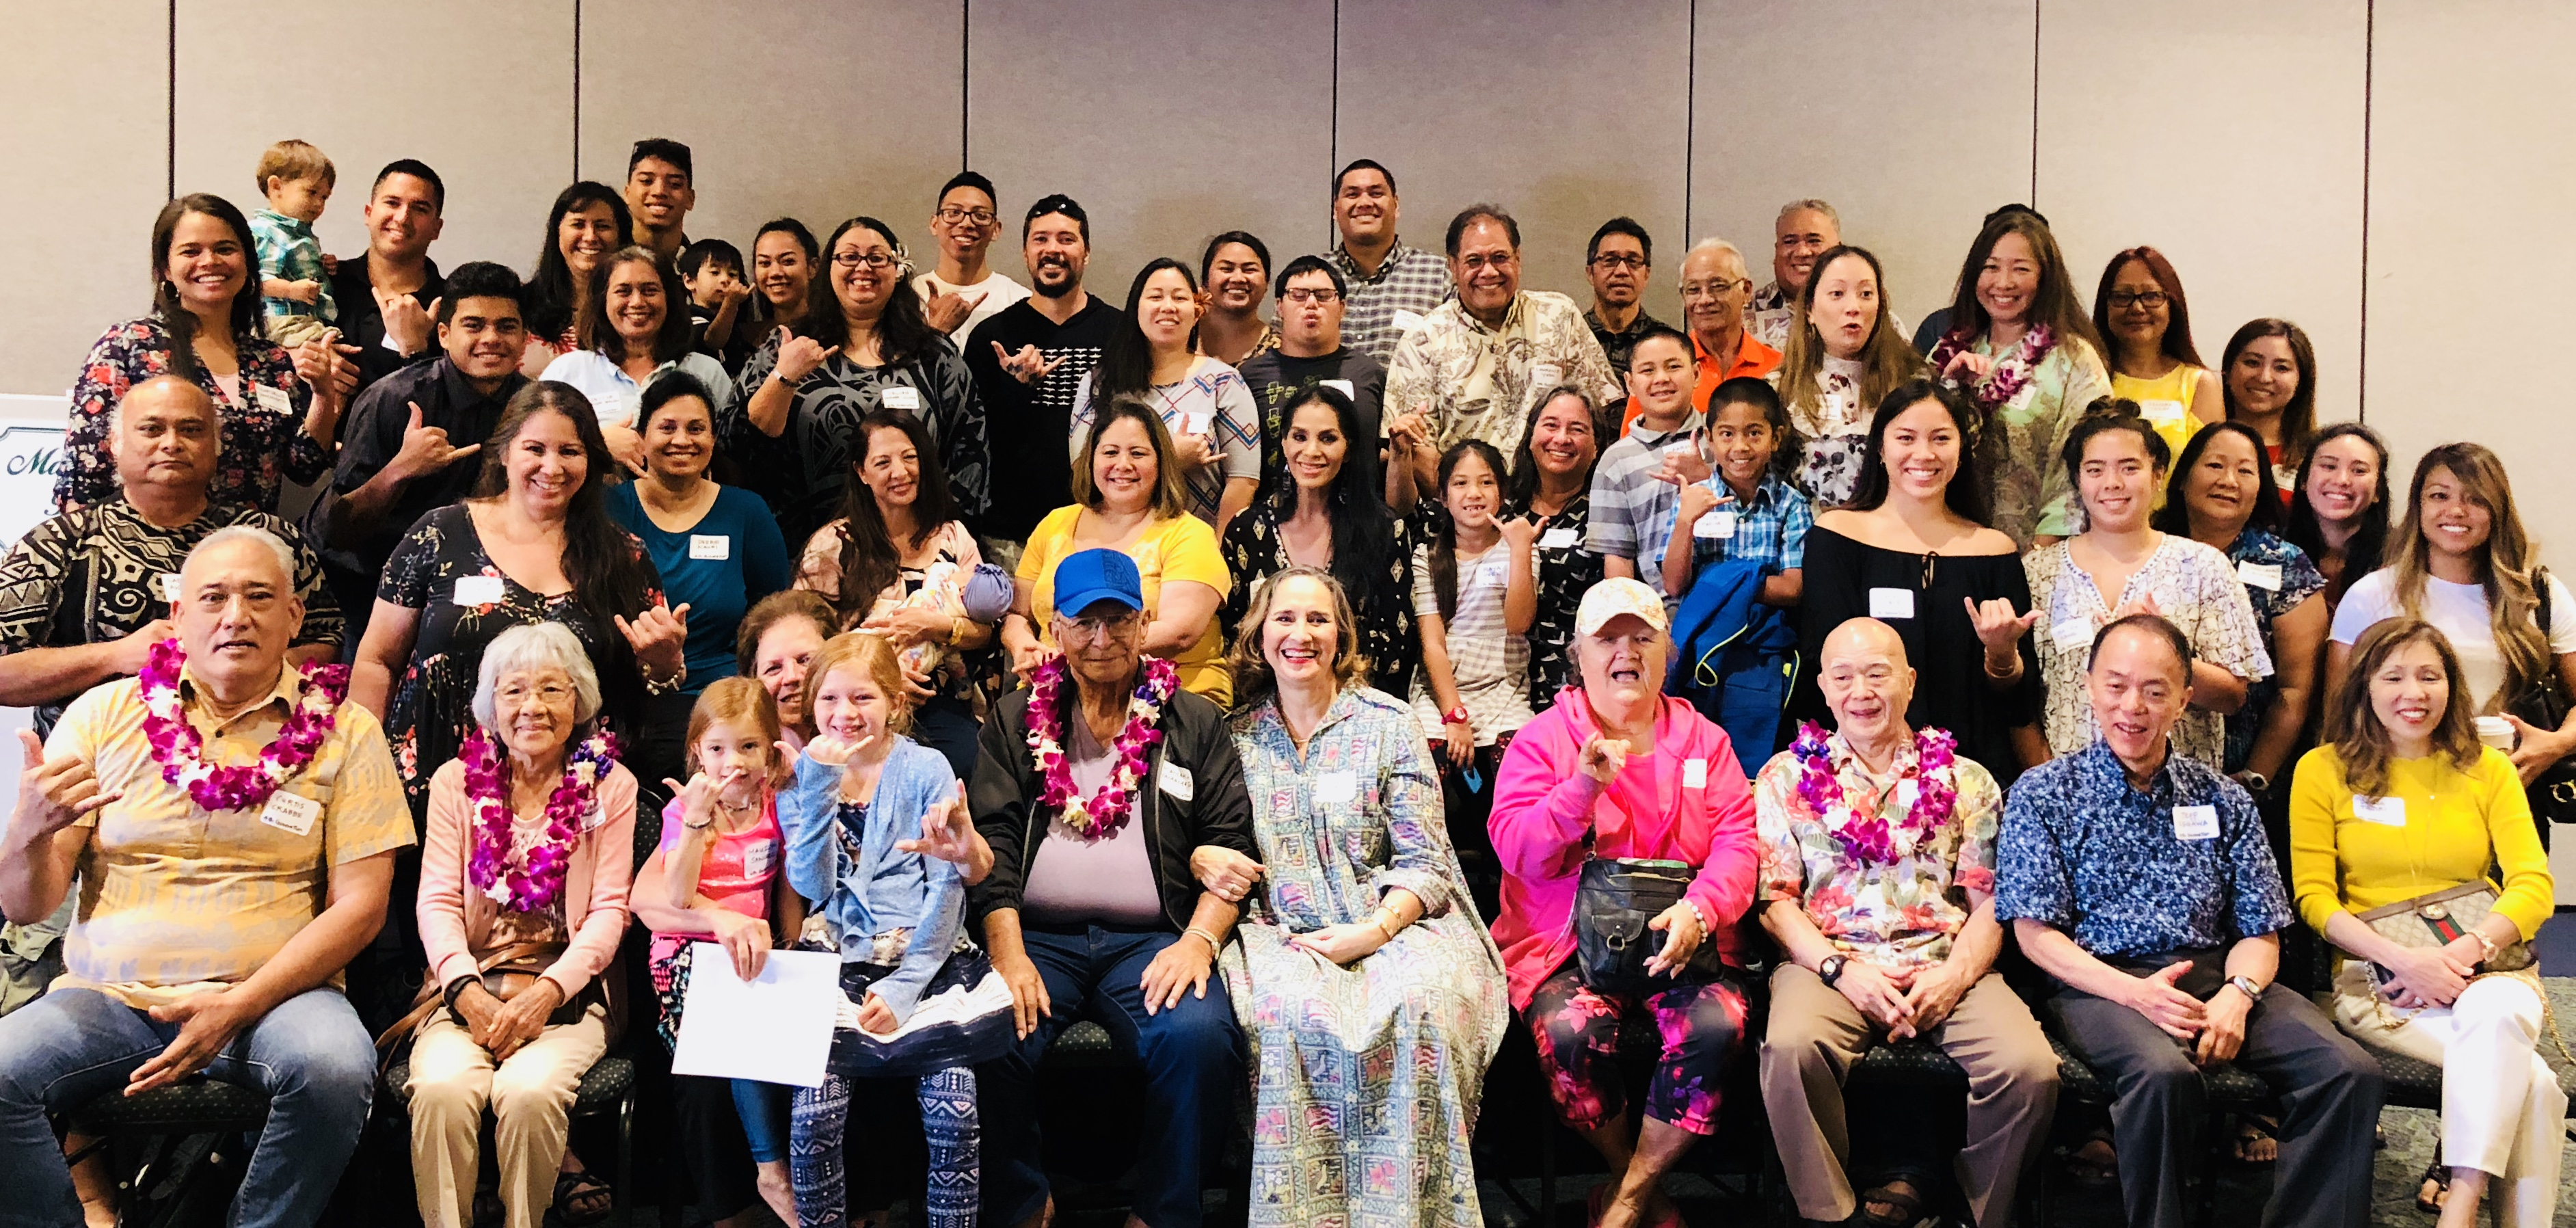 Nearly 60 descendants — third, fourth, fifth and even sixth generations — of Gannenmono Tokujiro Sasaki Sato gathered at the Japanese Cultural Center of Hawai'i earlier this year to celebrate their Gannenmono roots. (Photo by Carole Hayashino)